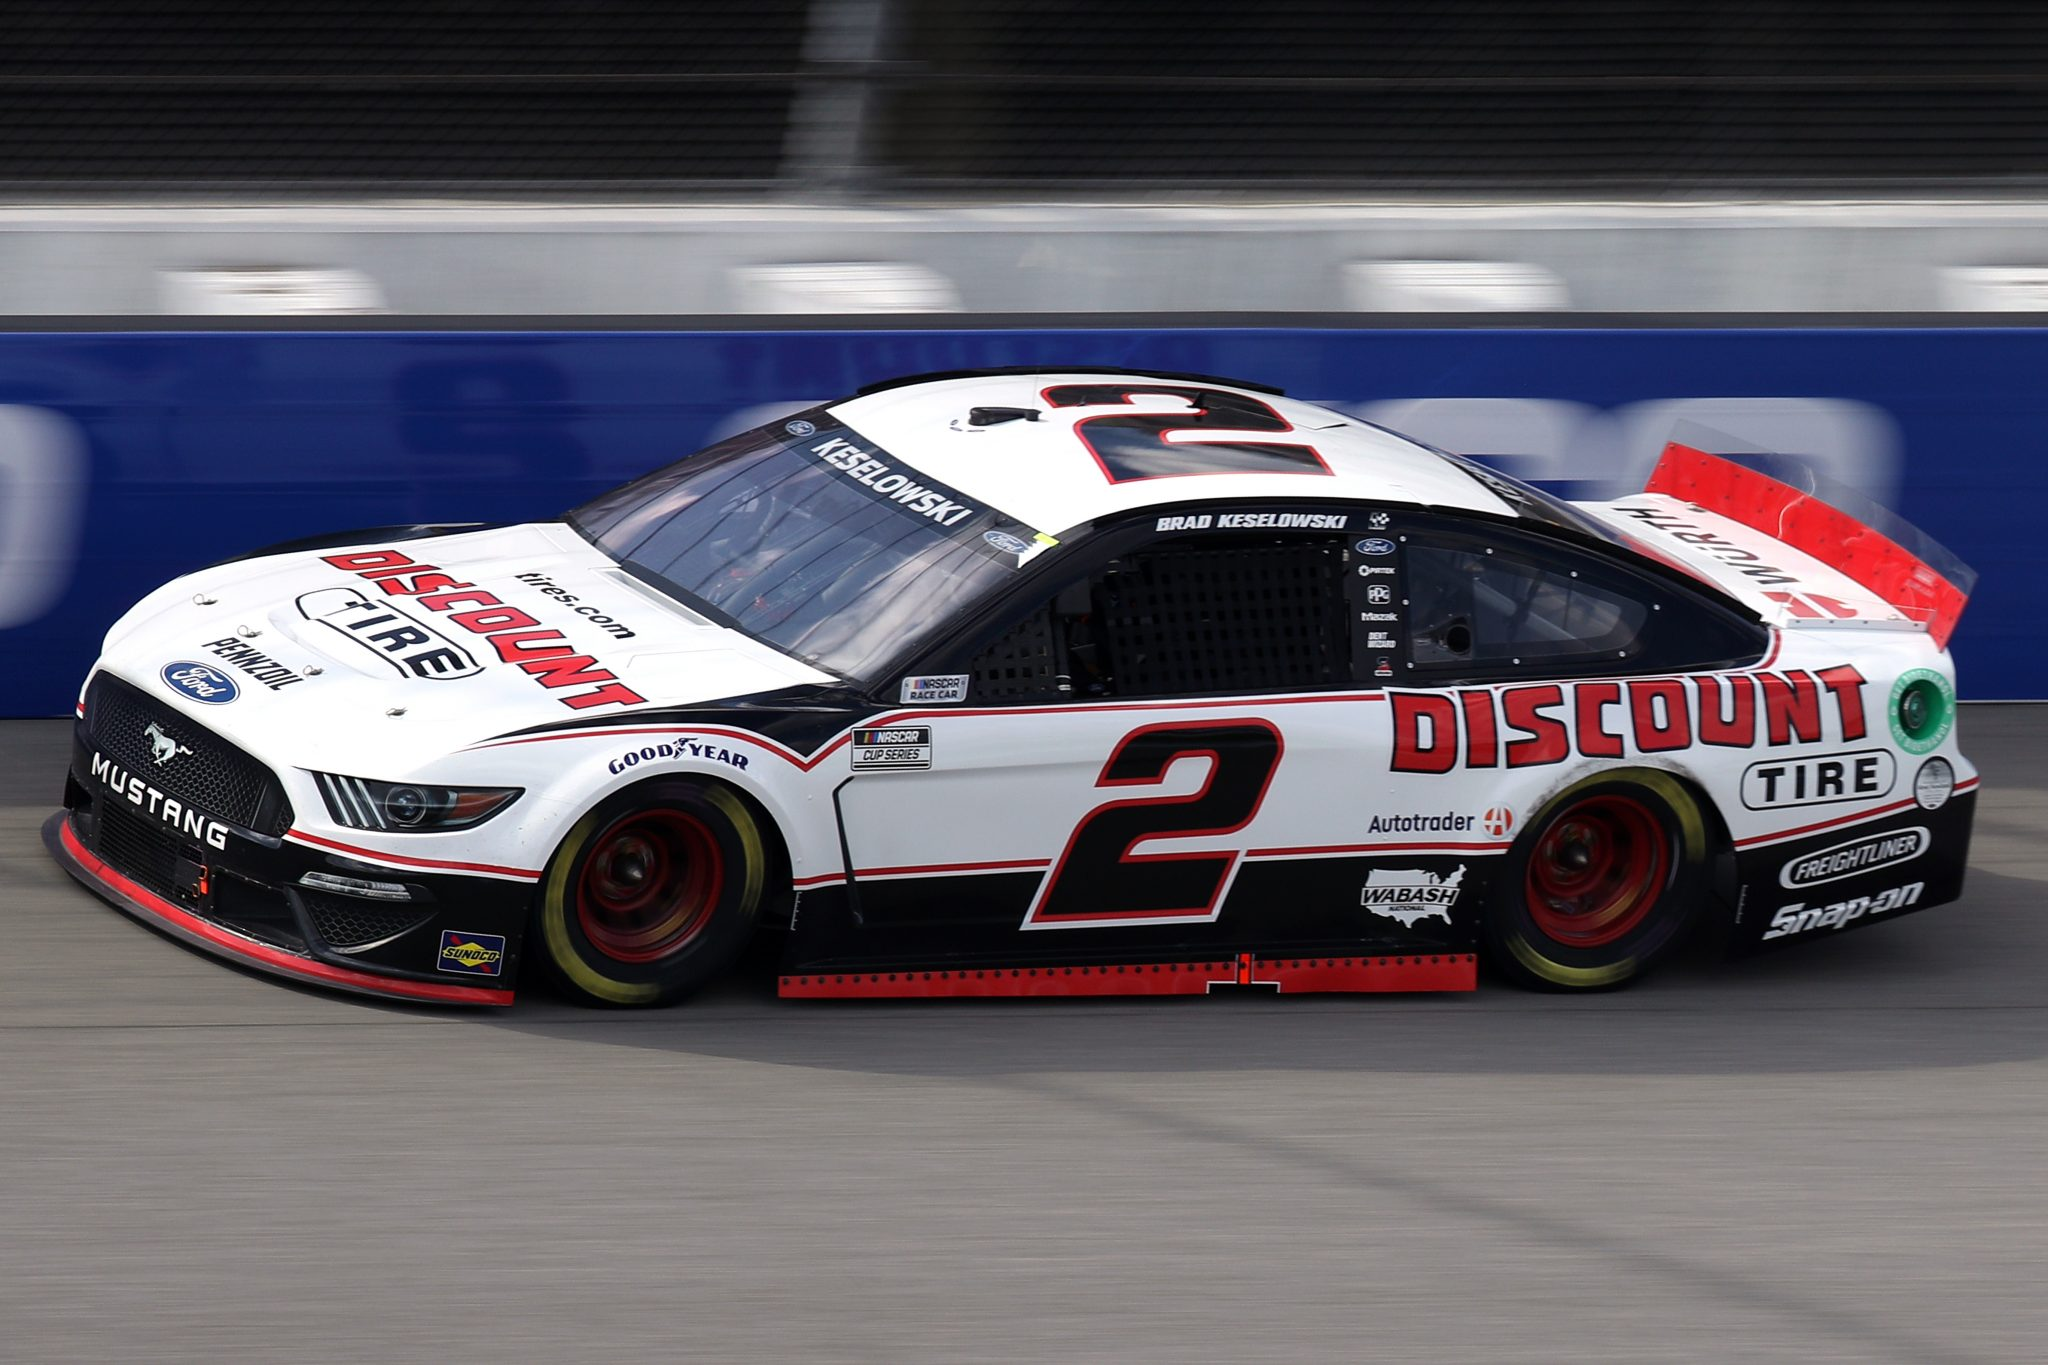 BROOKLYN, MICHIGAN - AUGUST 22: Brad Keselowski, driver of the #2 Discount Tire Ford, drives during the NASCAR Cup Series FireKeepers Casino 400 at Michigan International Speedway on August 22, 2021 in Brooklyn, Michigan. (Photo by Sean Gardner/Getty Images)   Getty Images